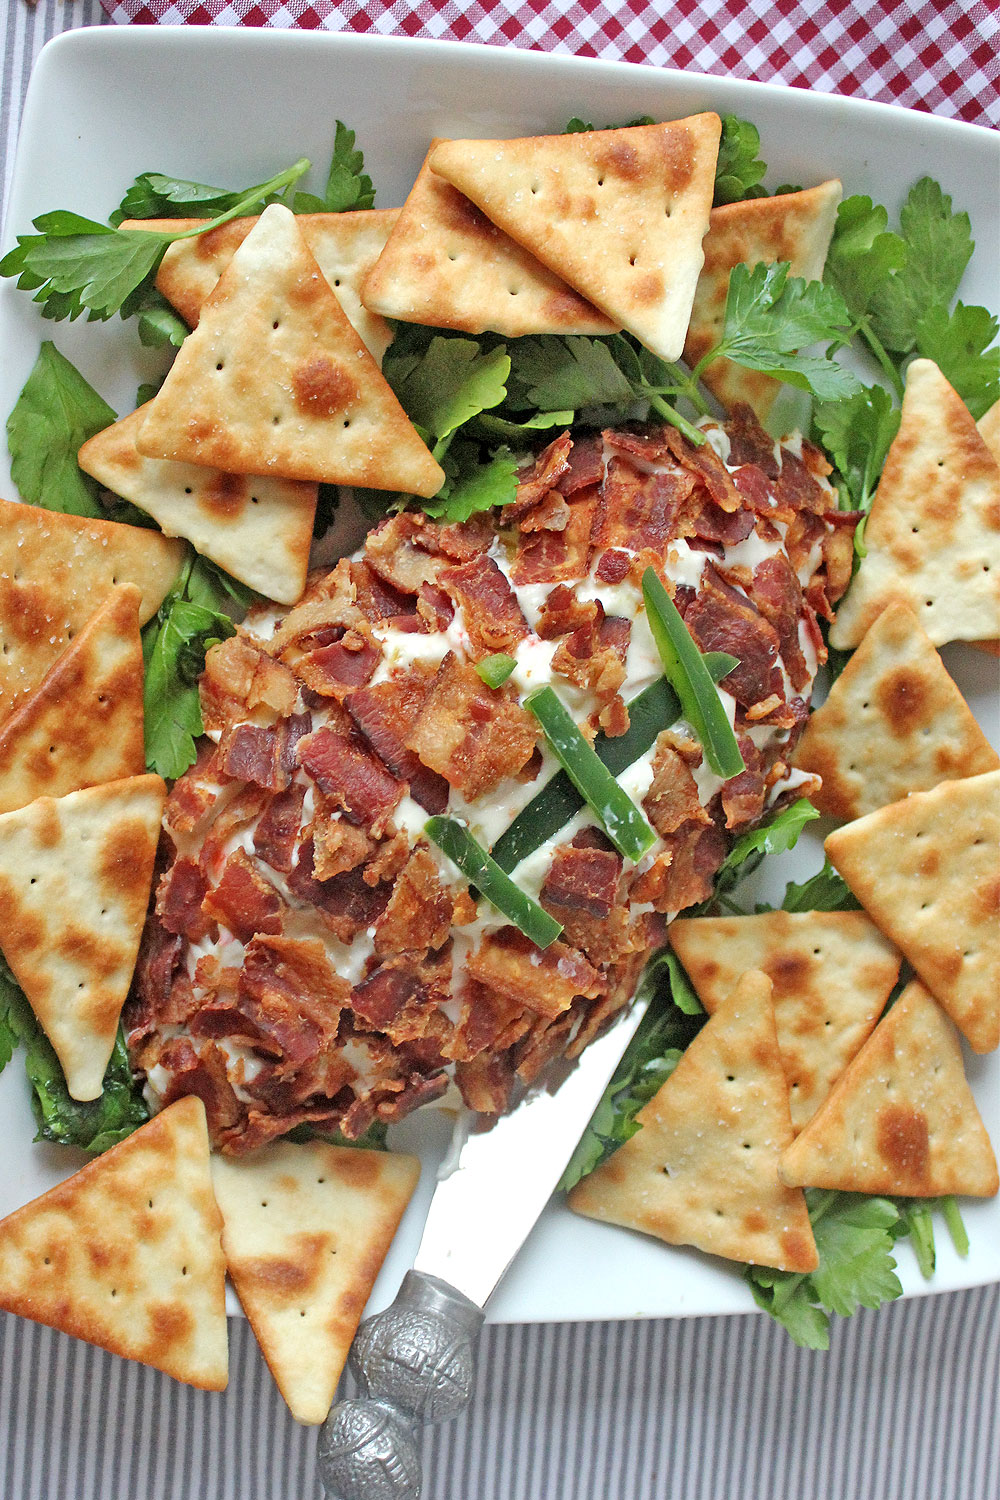 Pepper jelly and cream cheese football with bacon and jalapenos served on a platter with pita chips.